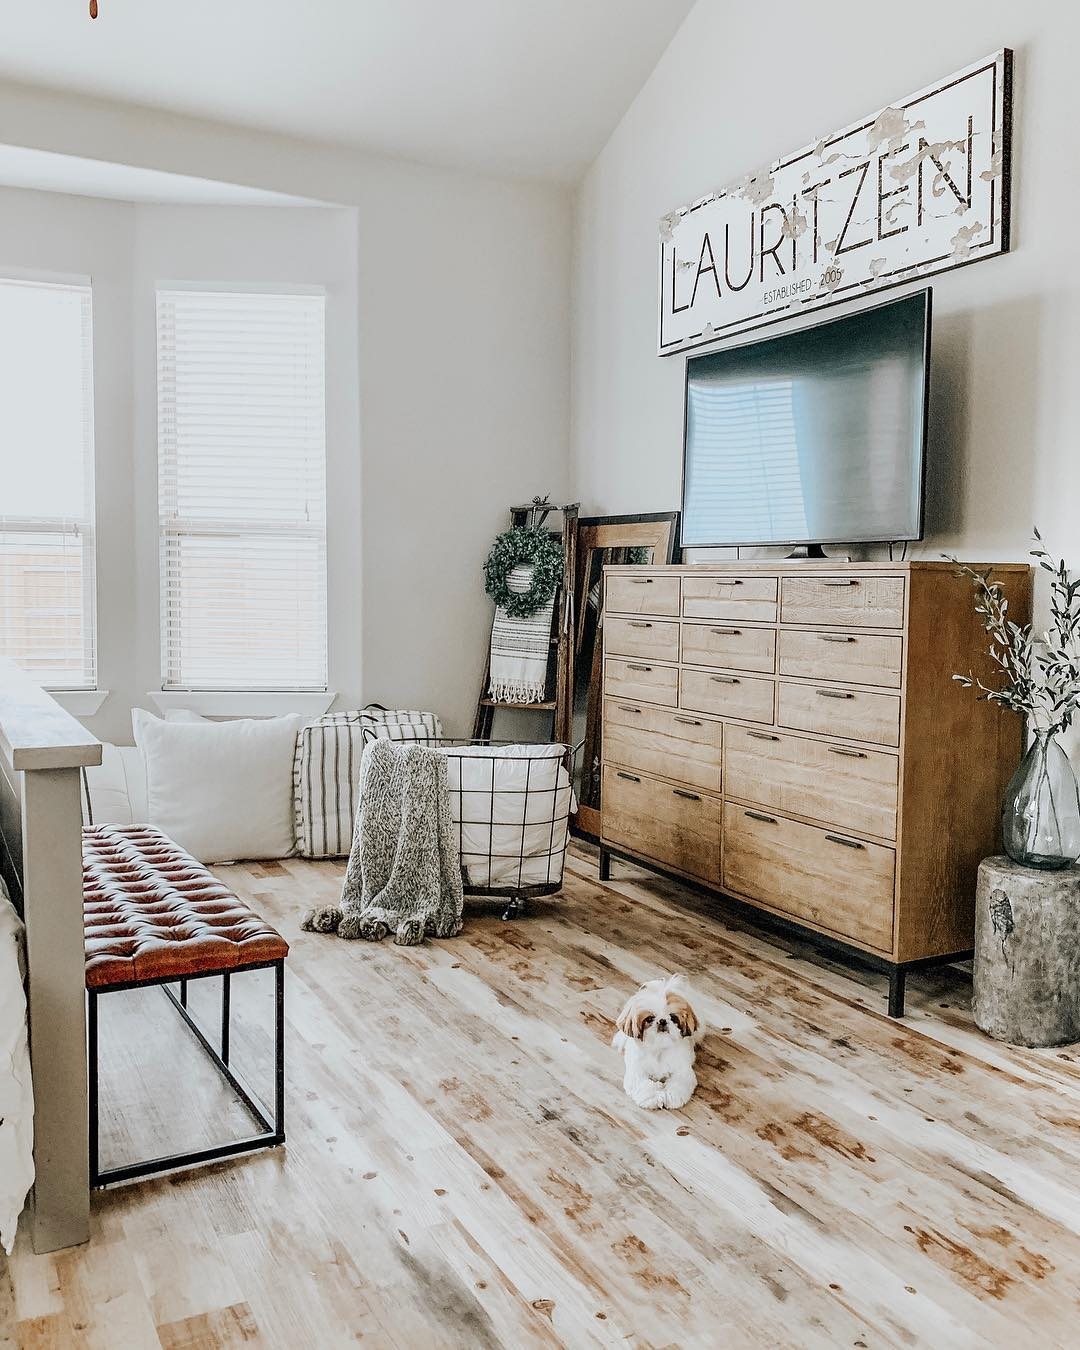 Master Bedroom by Our Faux Farmhouse Blog / @ourfauxfarmhouse